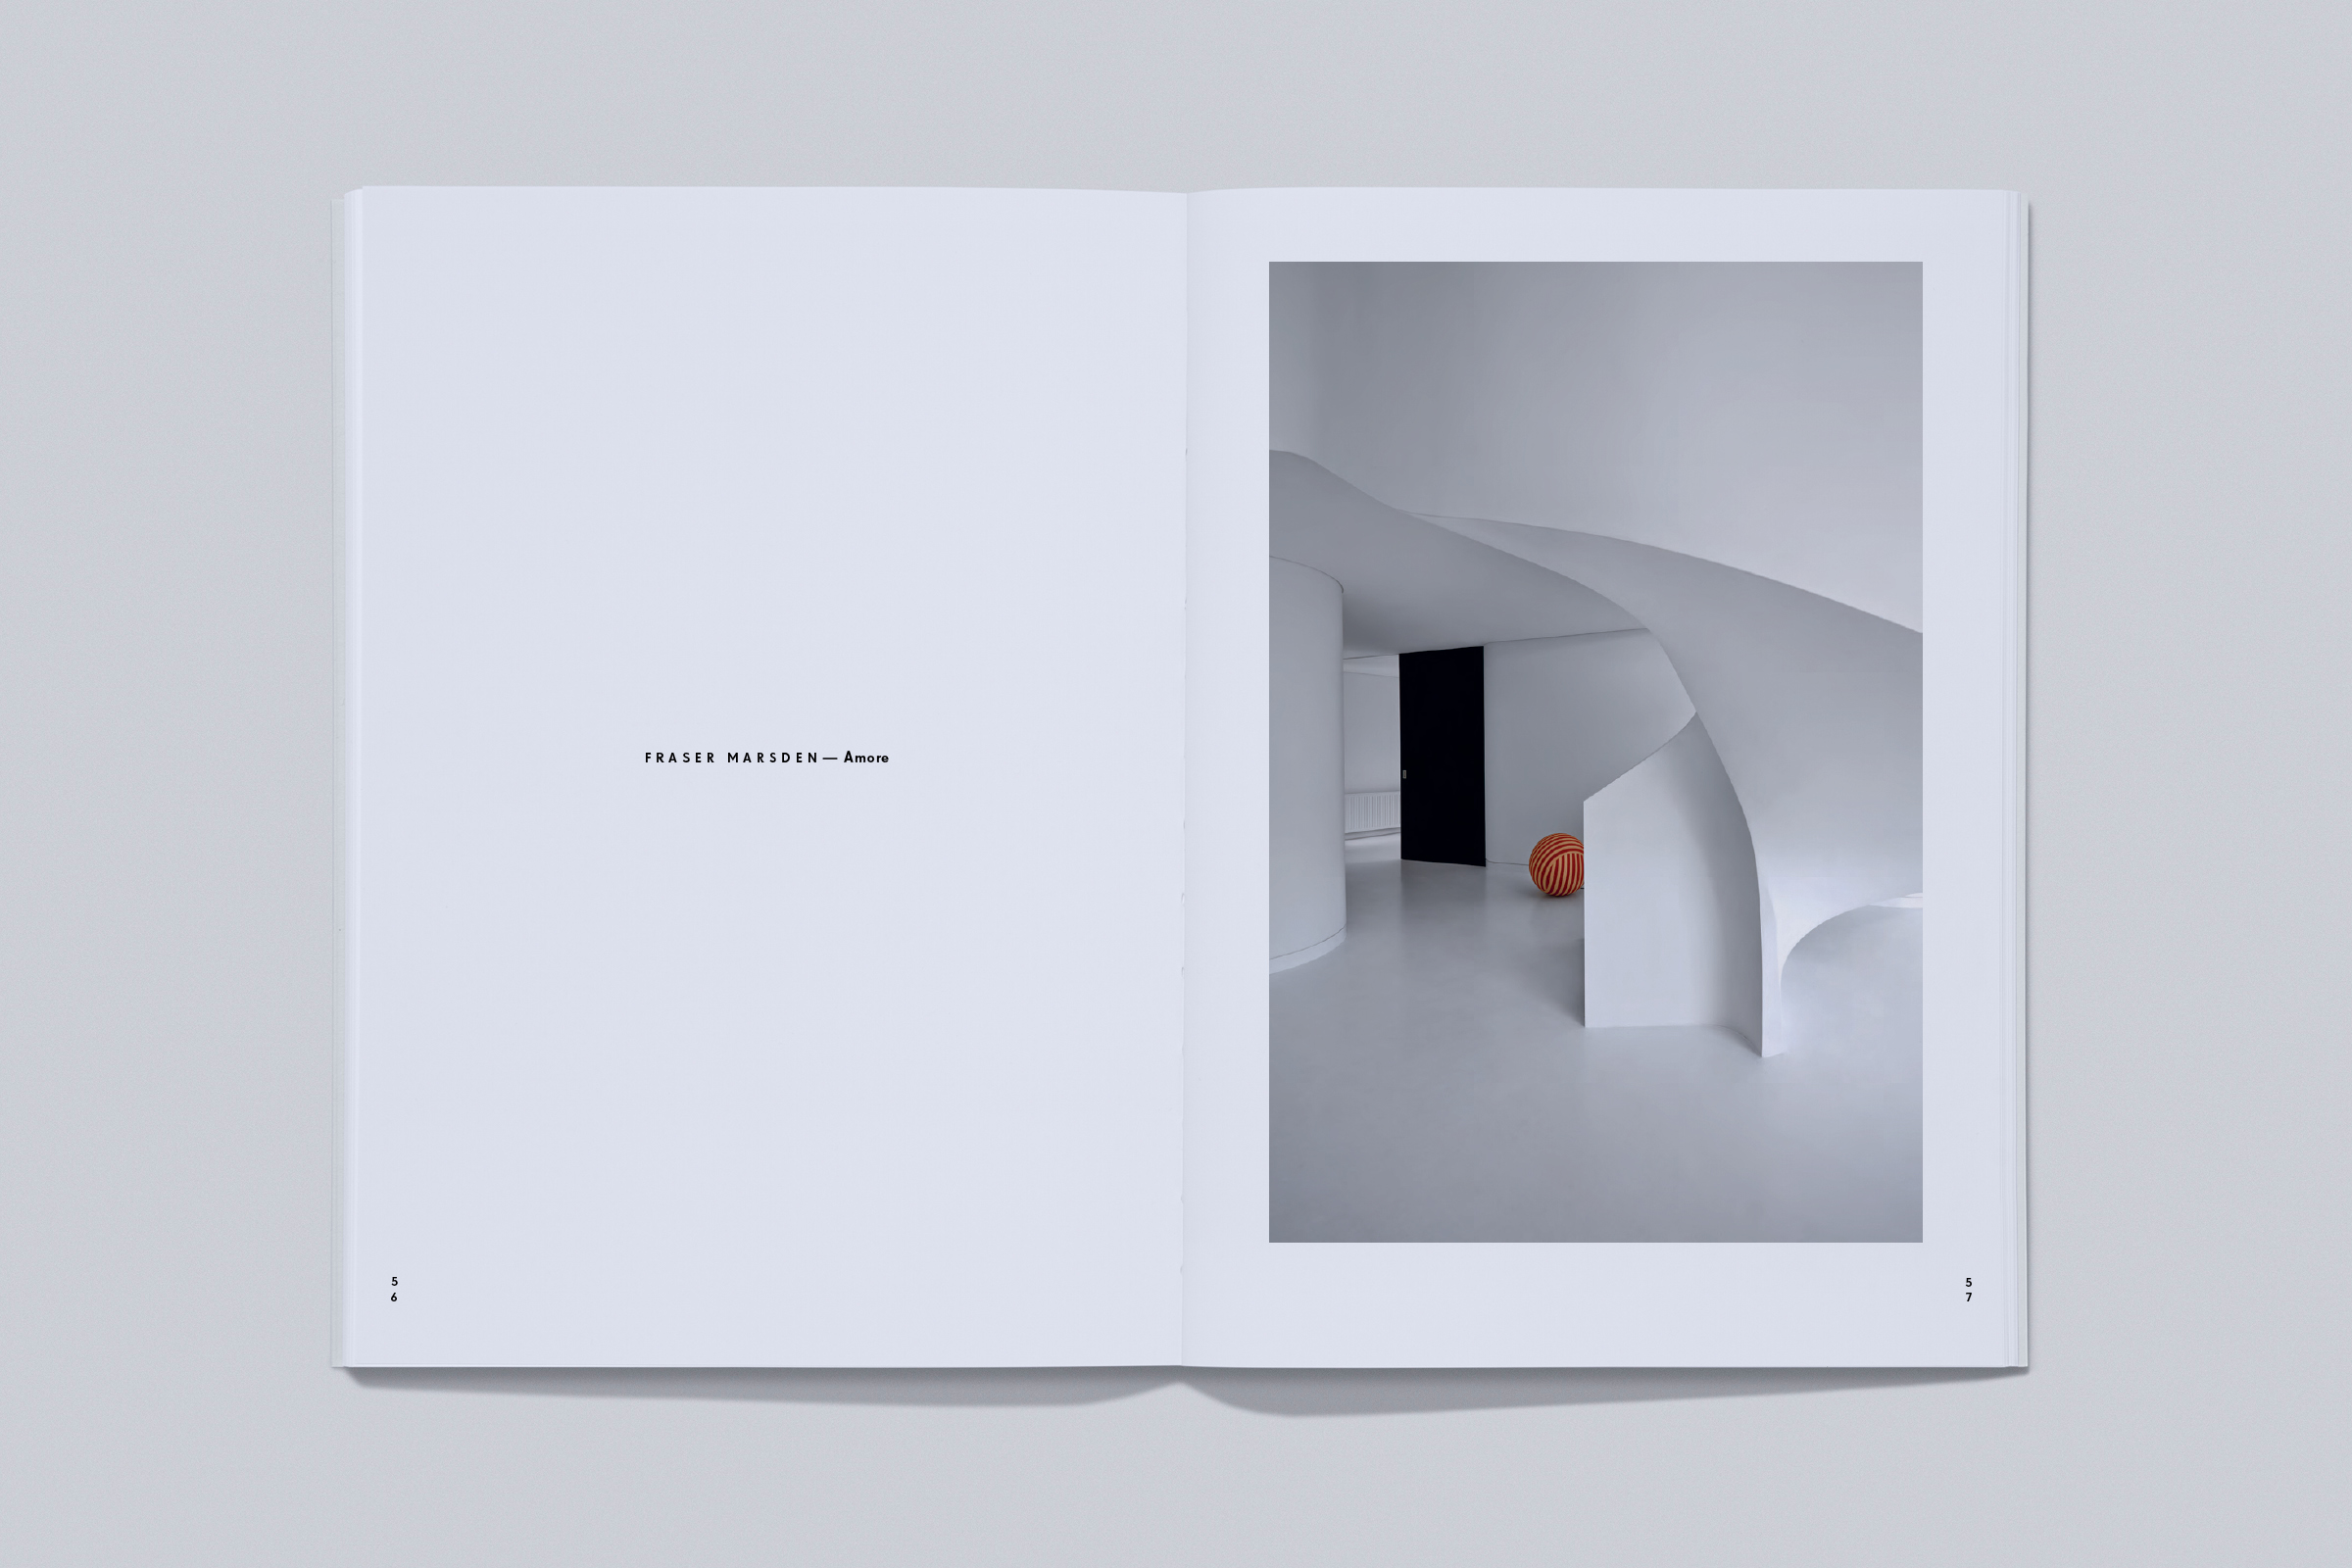 PLACE – PHOTOGRAPHY  Printed 10 Micron Stochastic – Perfected CMYK + Satin Varnish on Mohawk Superfine Smooth Ultra White 148 gsm.